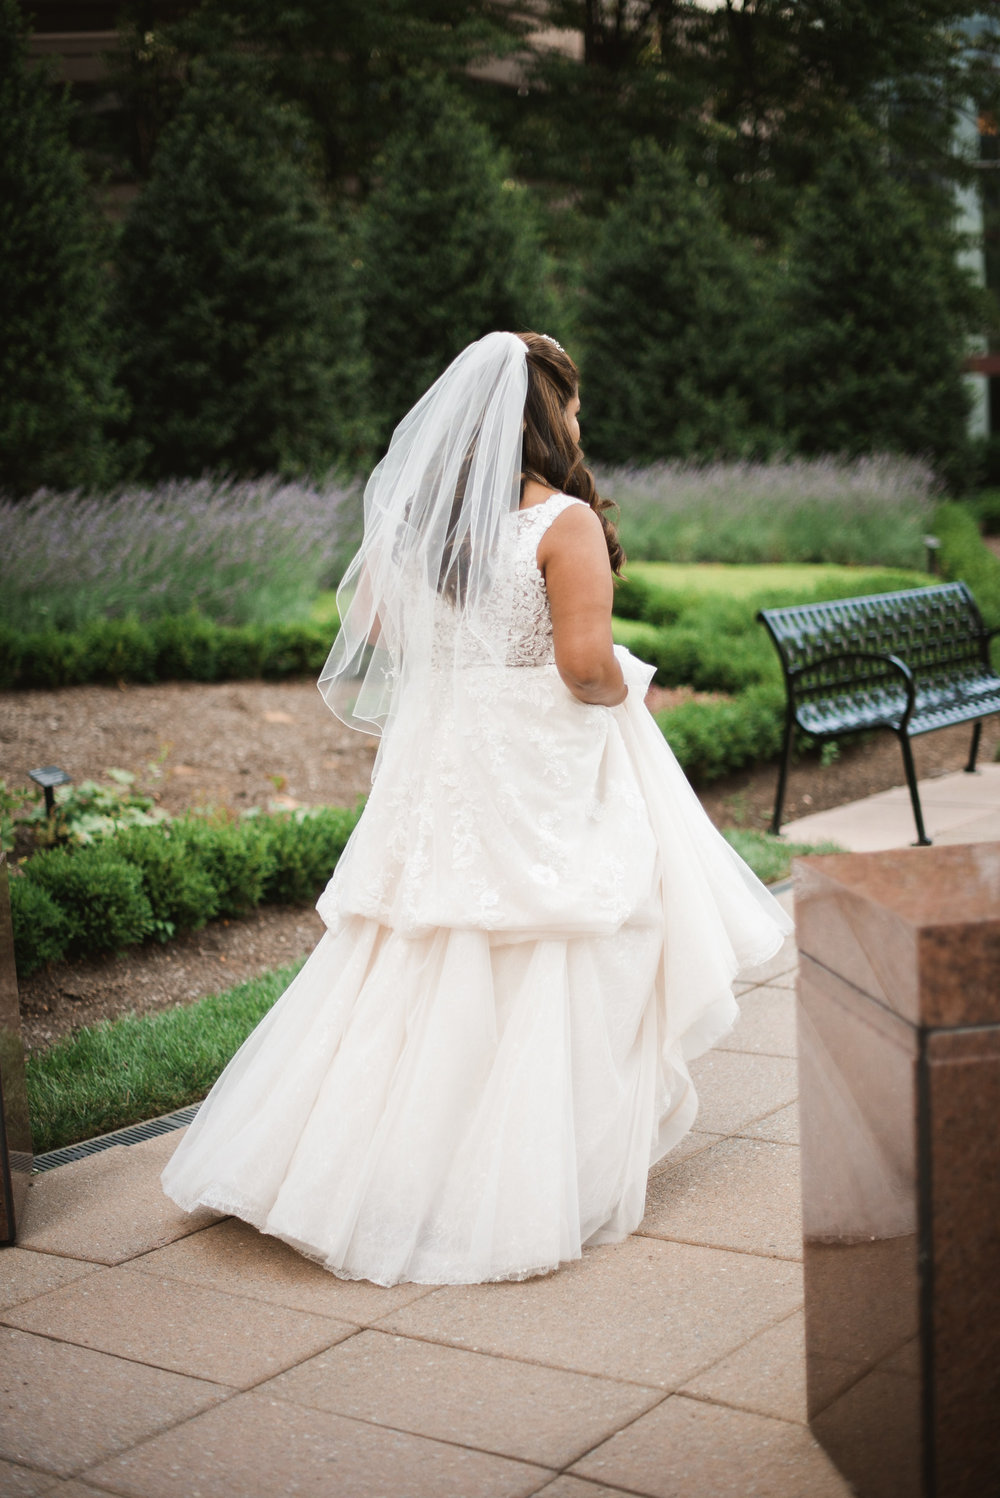 Bride walking through courtyard